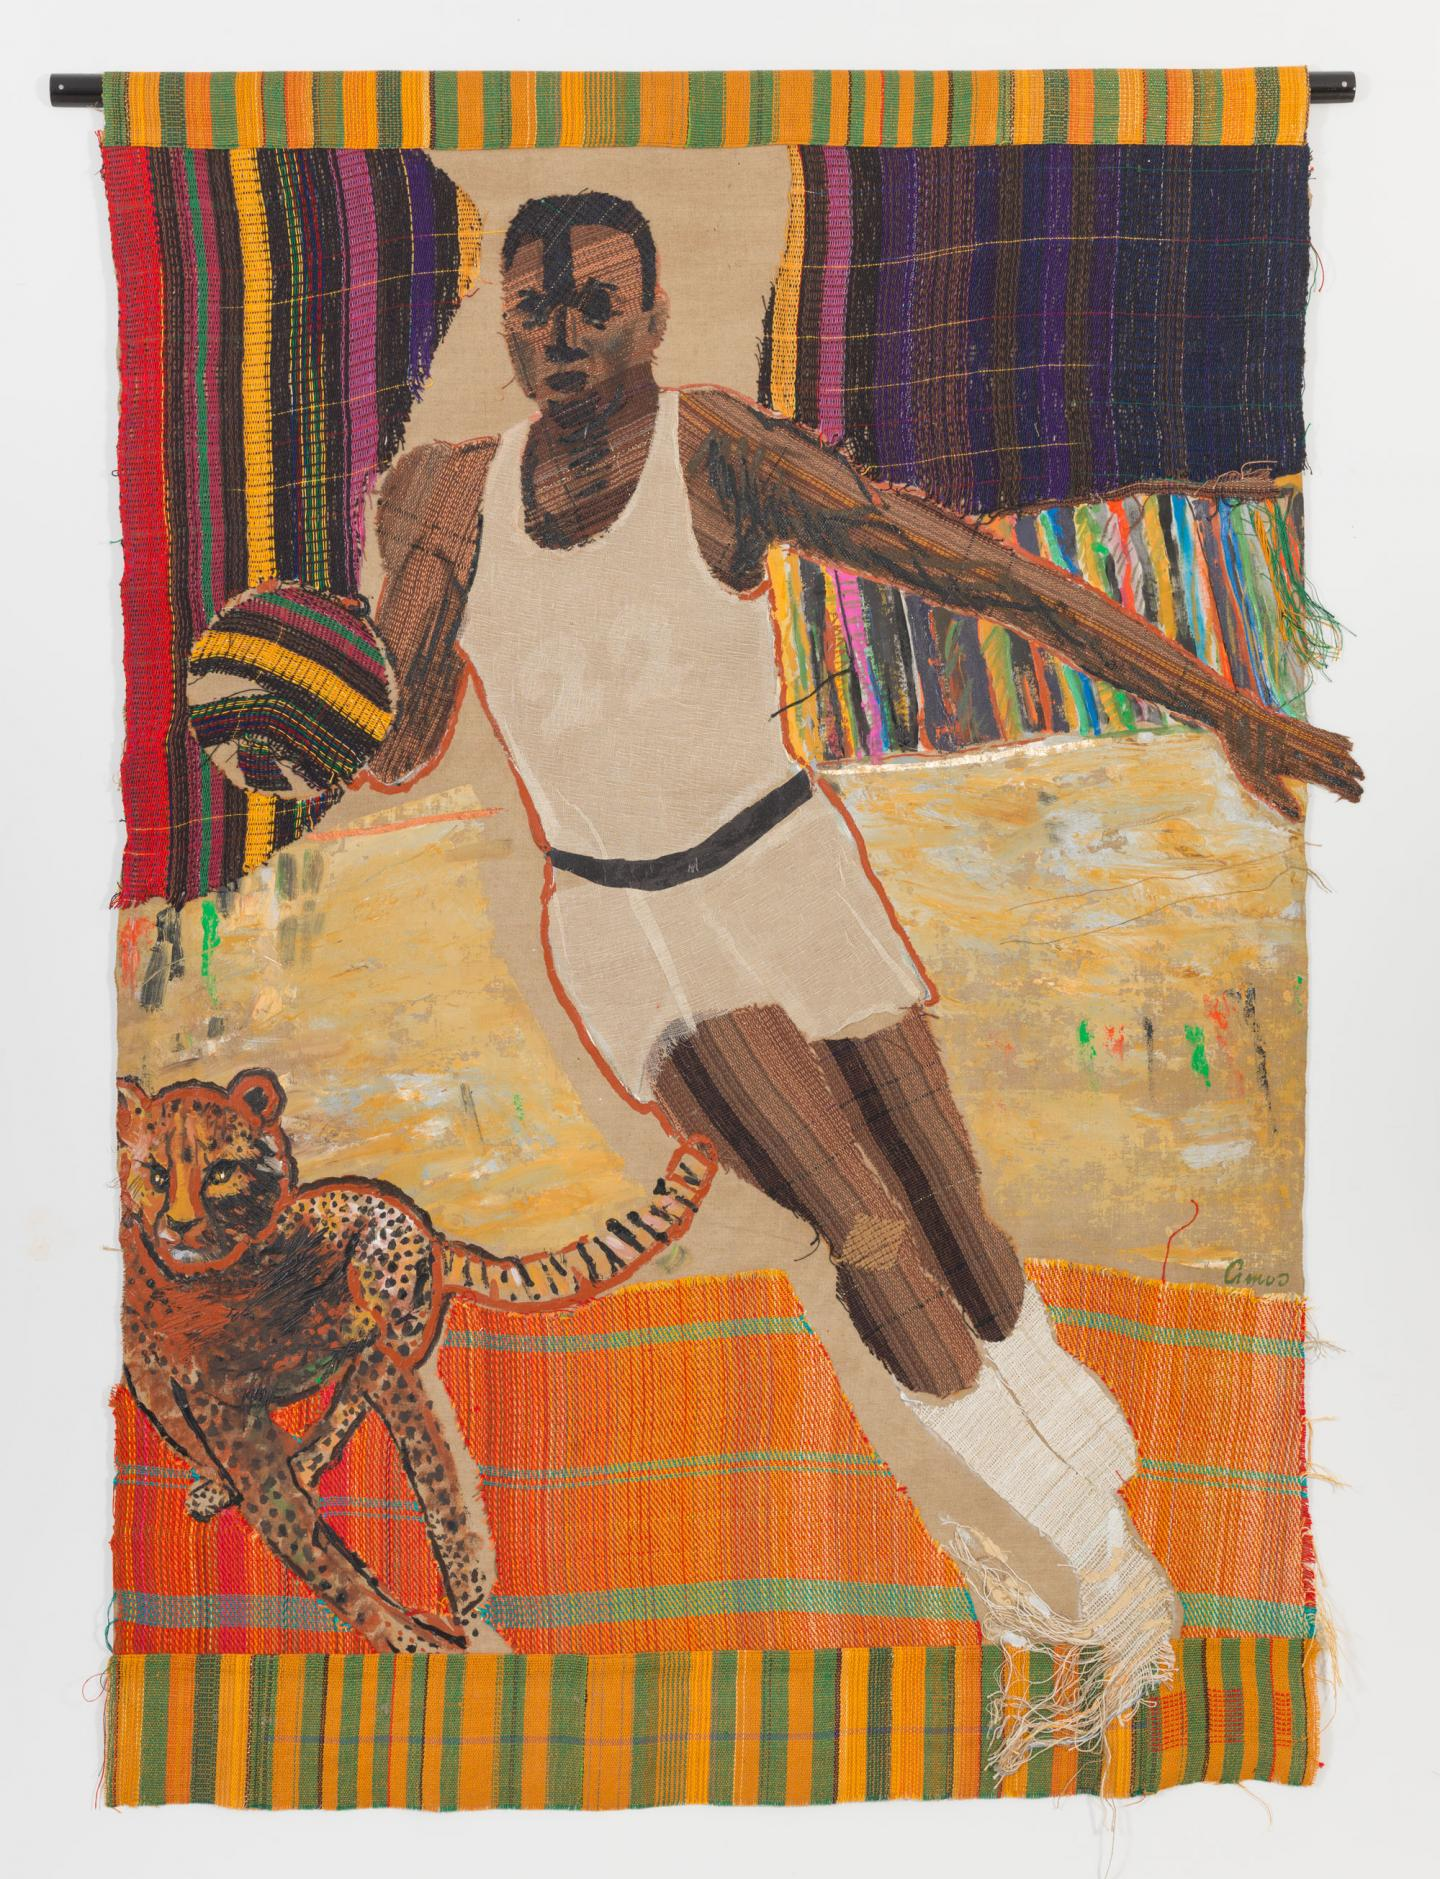 Emma Amos,22 and Cheetah, 1982, acrylic on canvas with hand-woven fabric, 215 × 190 cm. Courtesy: the Georgia Museum of Art, Athens